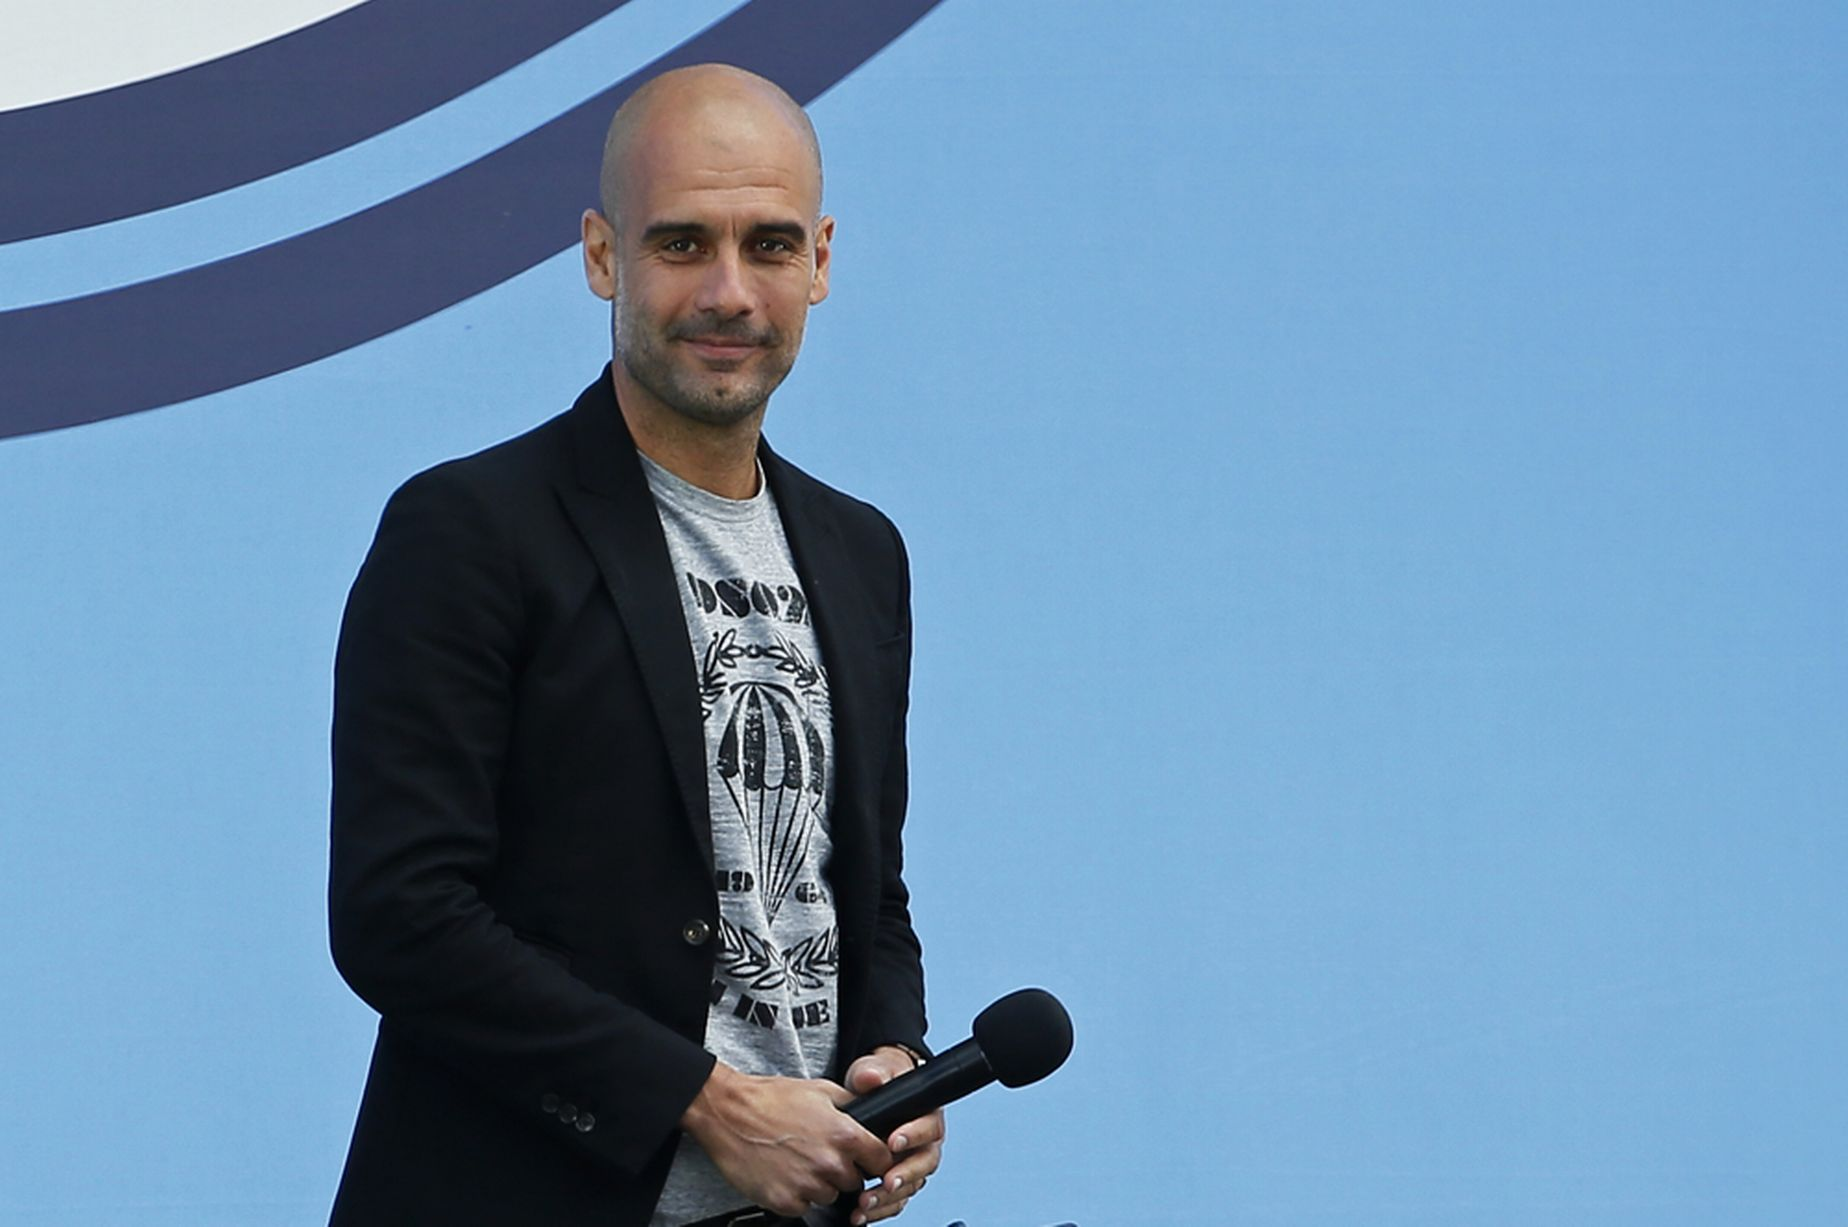 PEP TALK: Guardiola On Mourinho, Conte, Sterling, Toure, Style